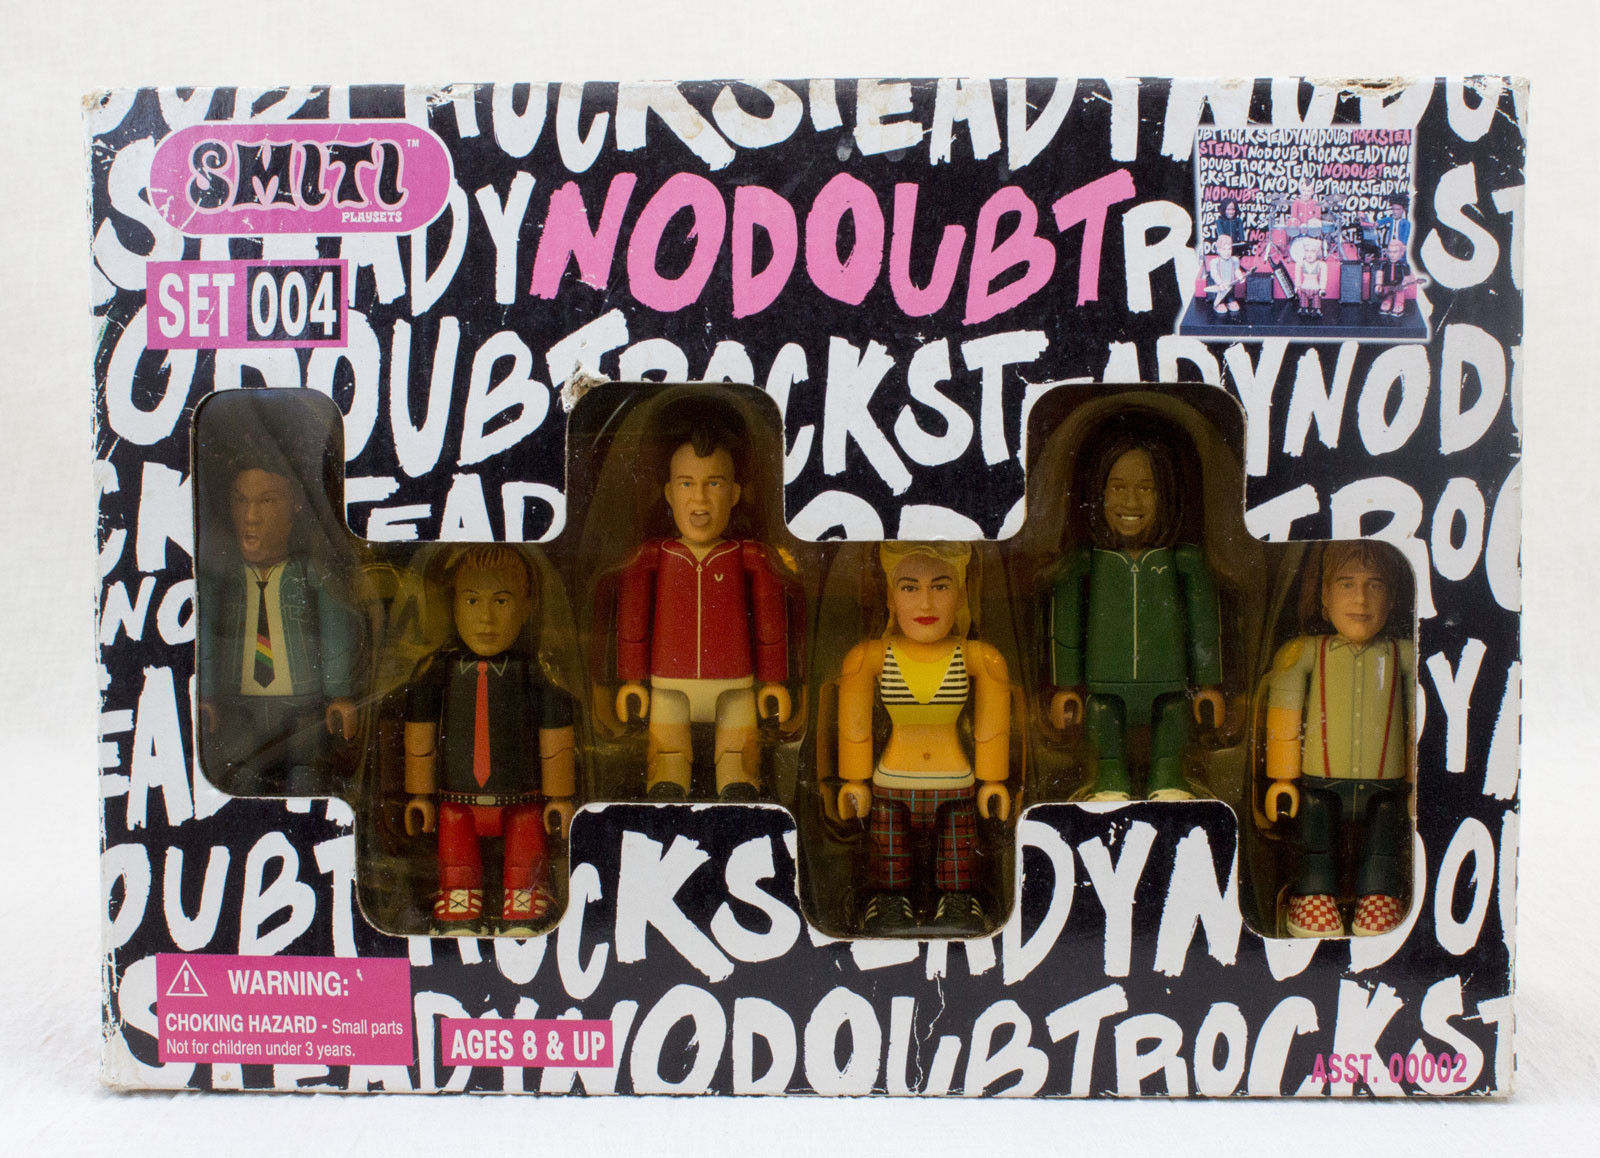 No Doubt SMITI Action Figure Band Concert Play Set 004